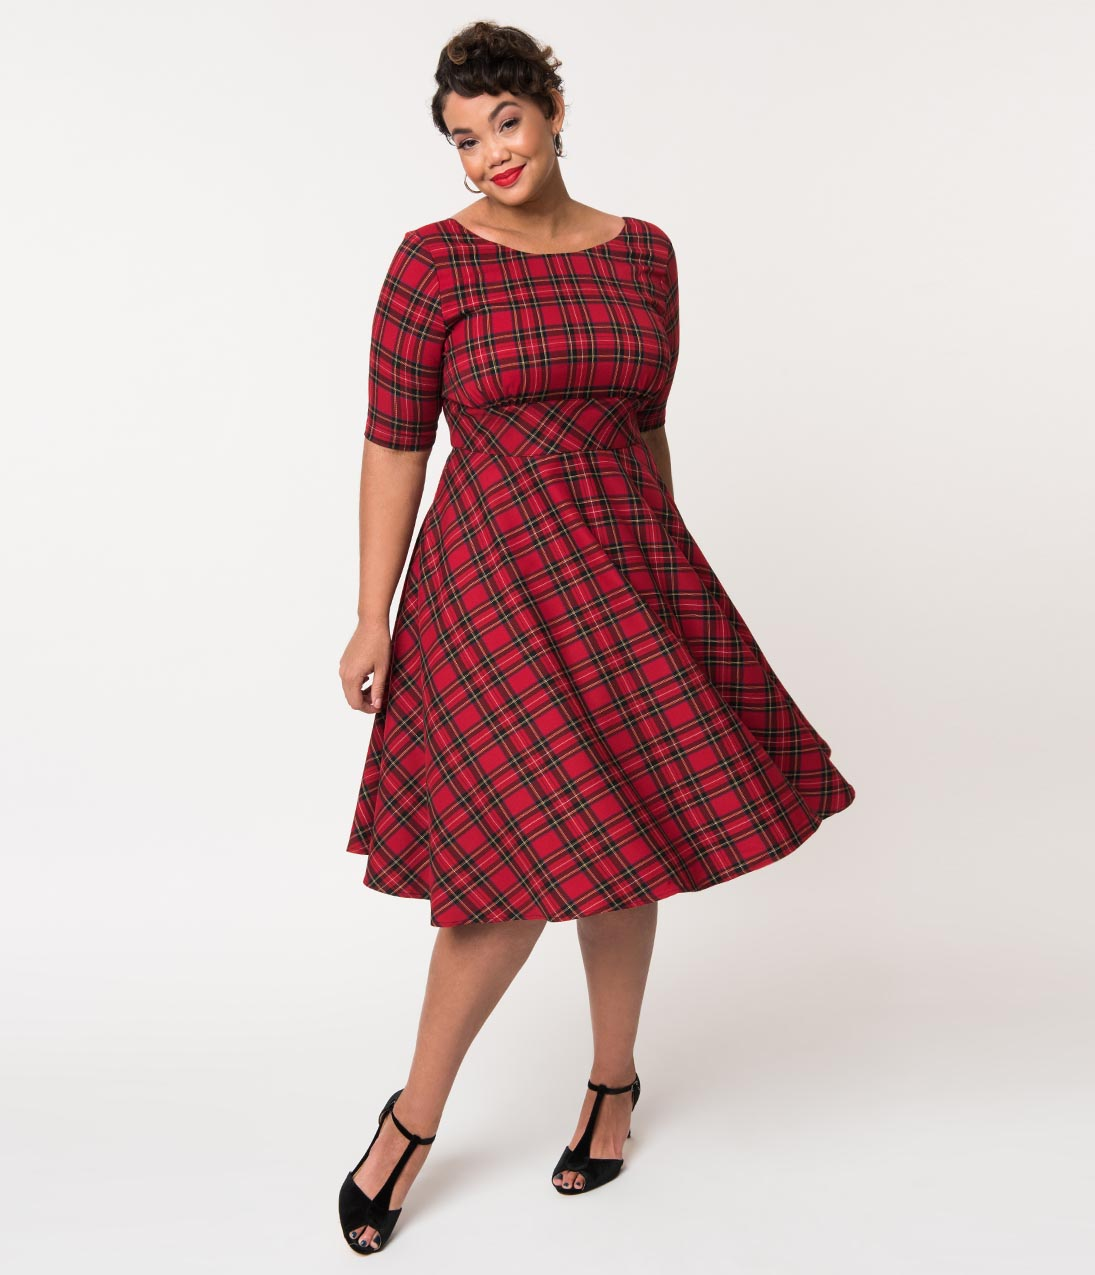 1960s Dresses | 60s Dresses Mod, Mini, Jackie O, Hippie Hell Bunny Plus Size 1950S Red Plaid Woven Half Sleeve Irvine Swing Dress $82.00 AT vintagedancer.com